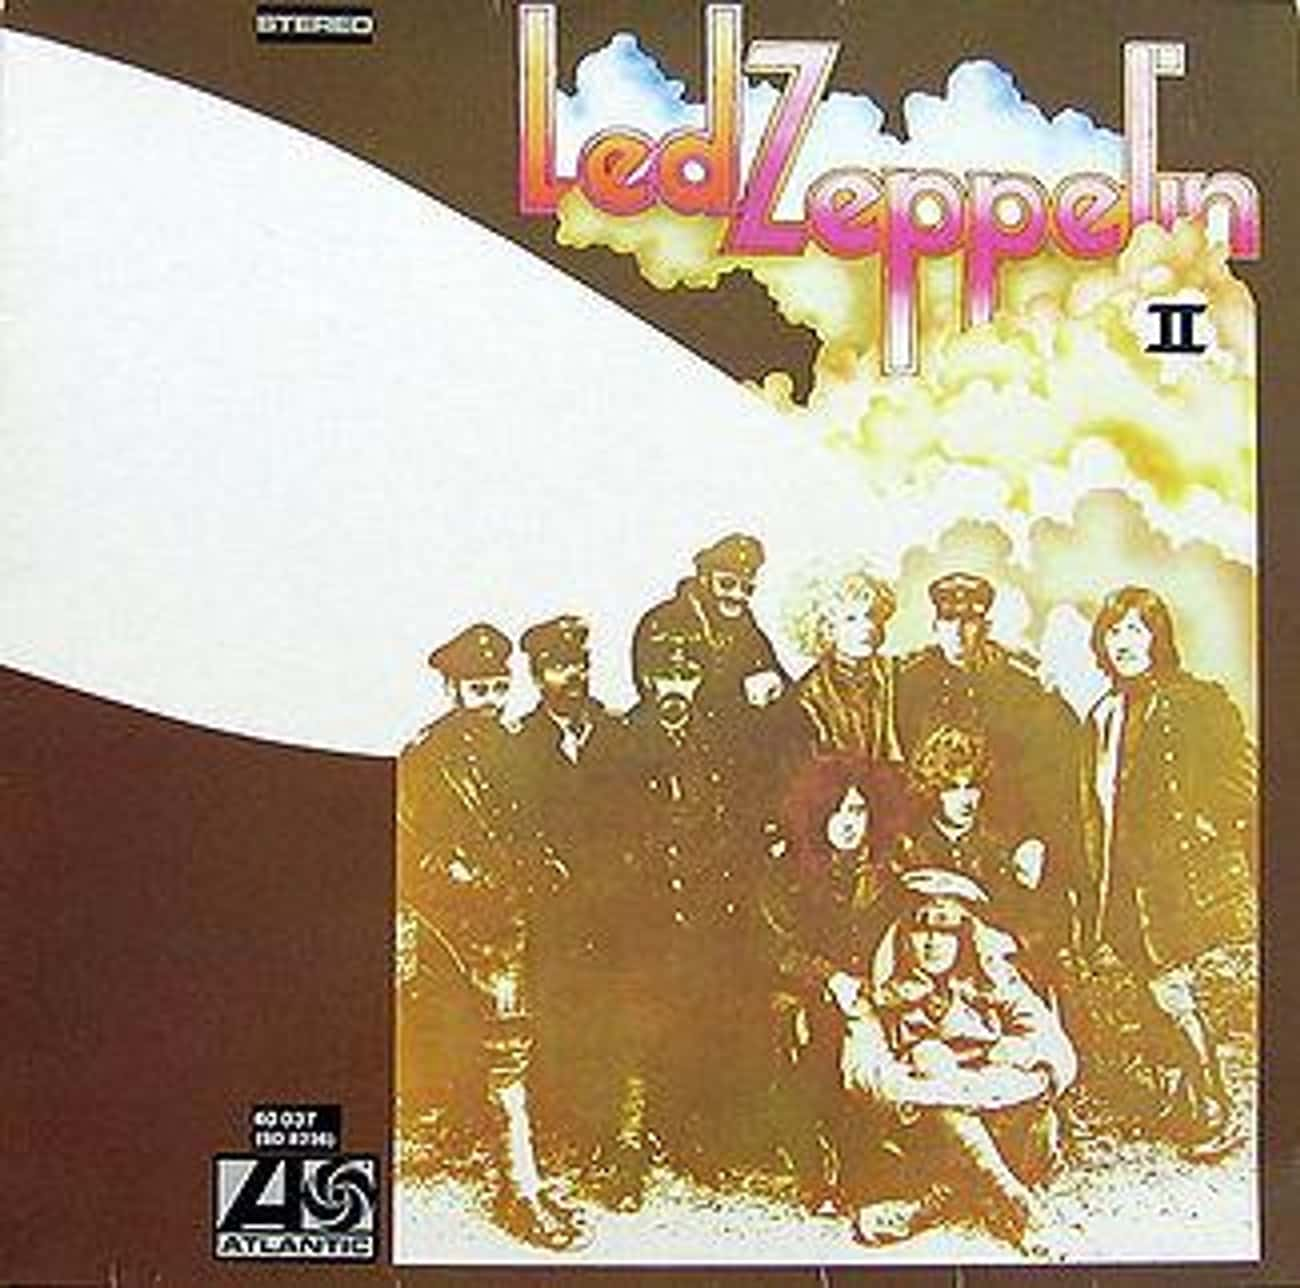 Led Zeppelin II is listed (or ranked) 3 on the list The Best Led Zeppelin Albums of All Time